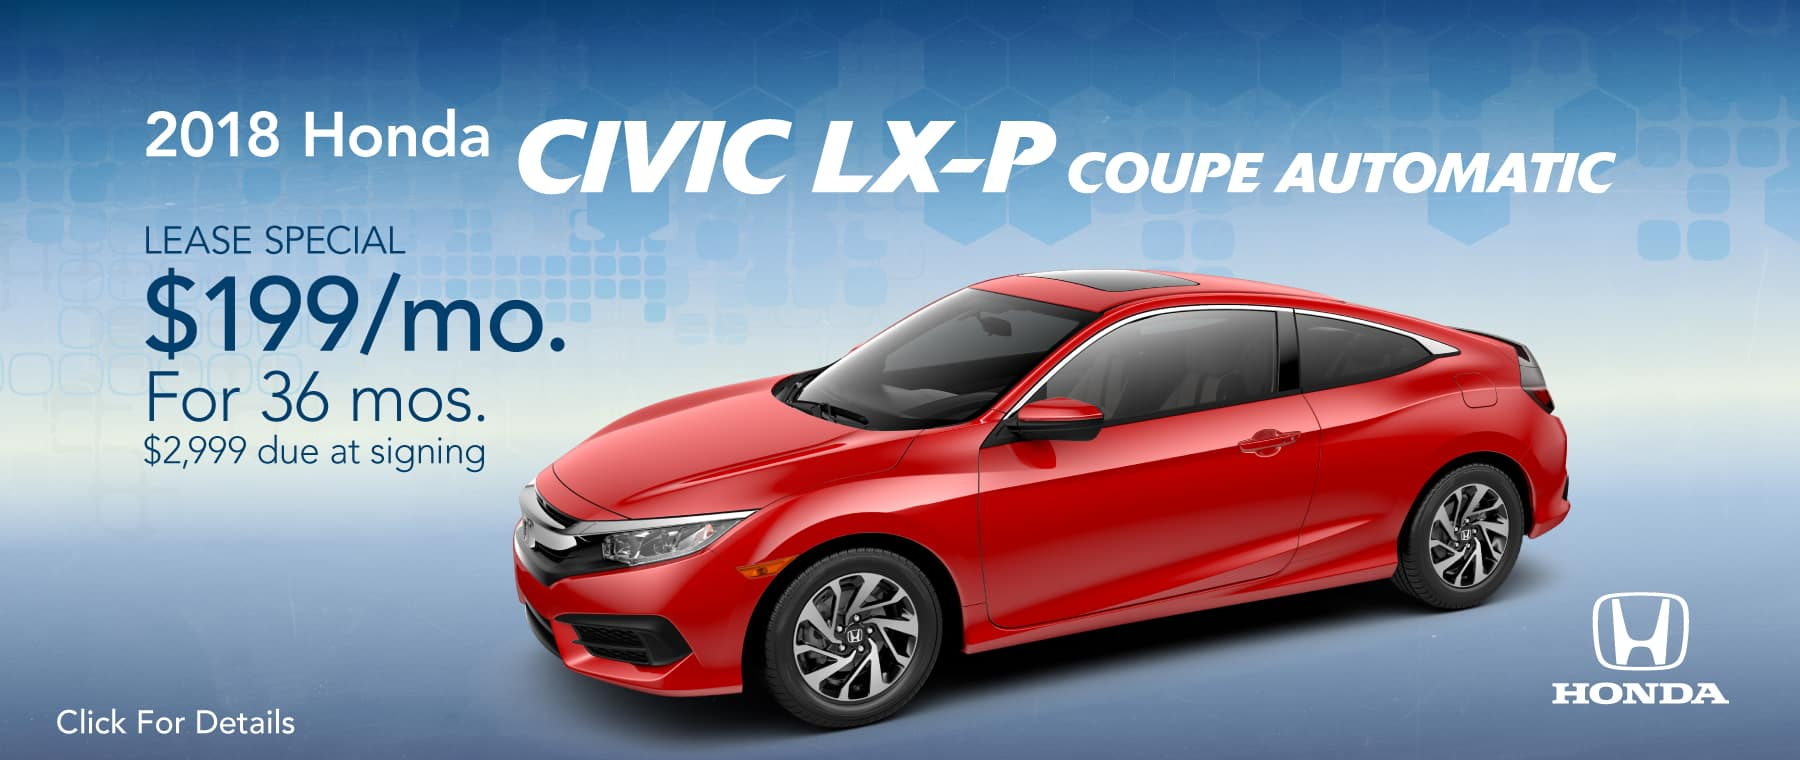 2018 Honda Civic LX-P Coupe Automatic  $199/mo. For 36 mos. $2,999 due at signing*